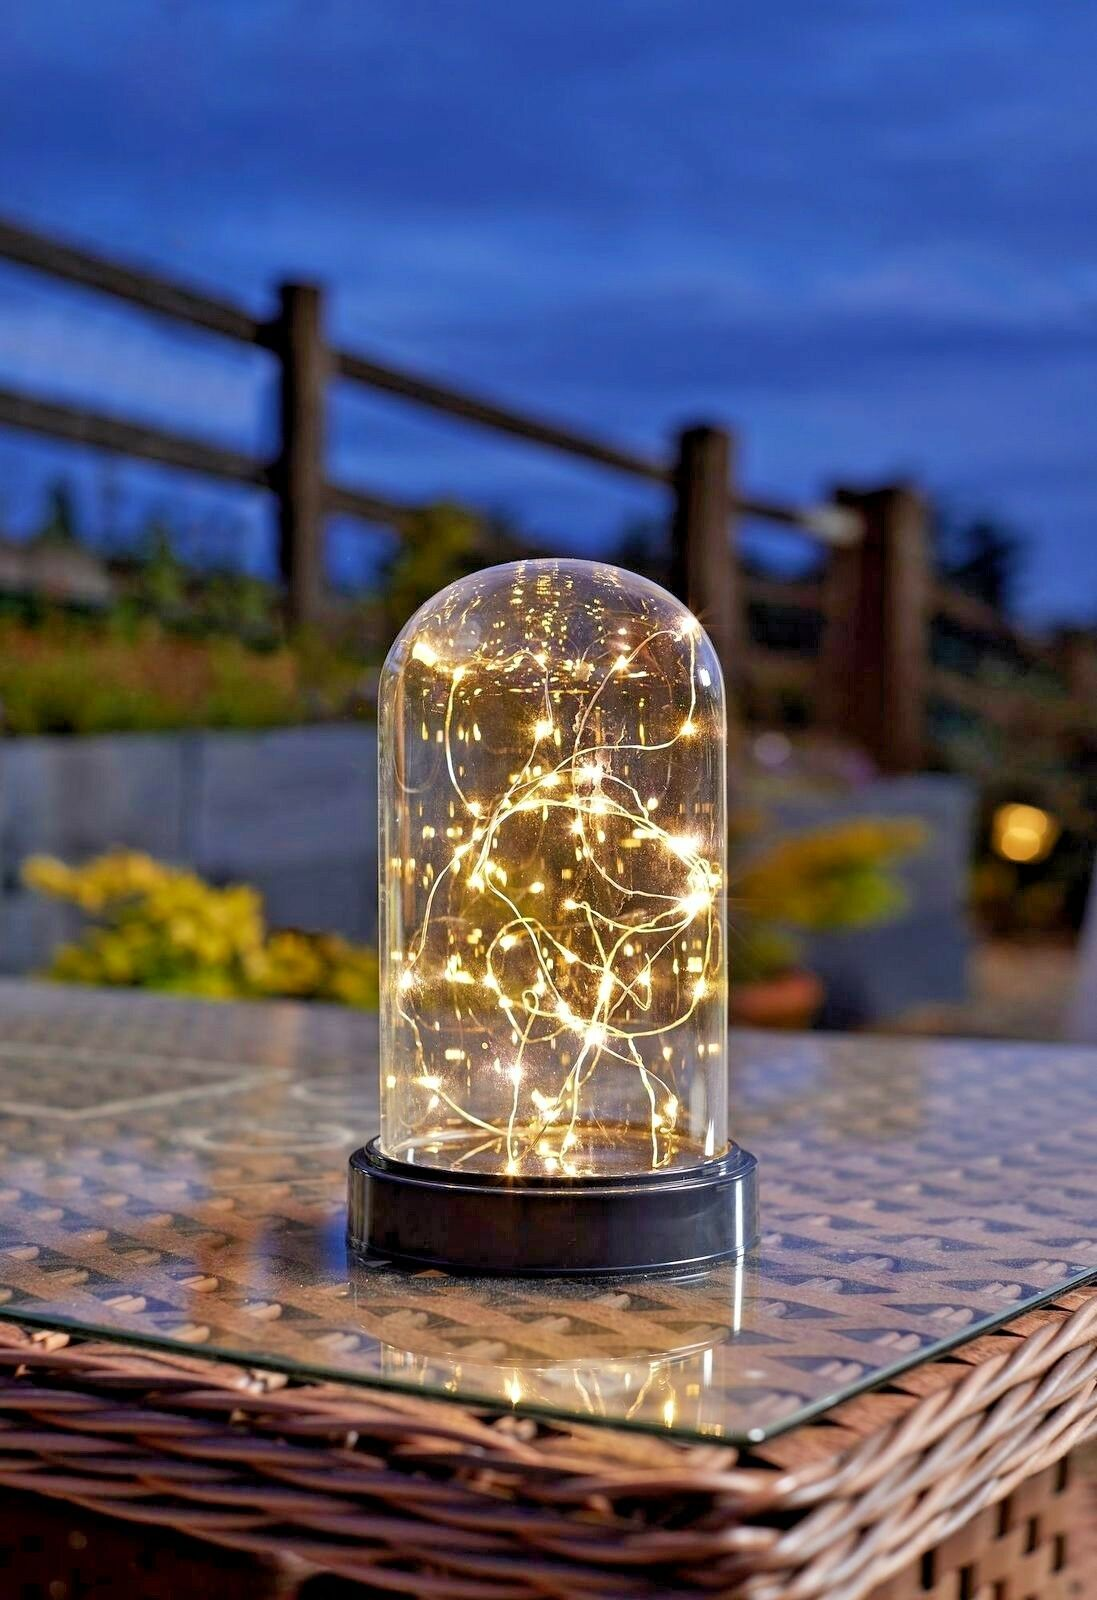 Transparent//White Rice Lights With Timer Glass 5 Star Lantern with Rope Handle